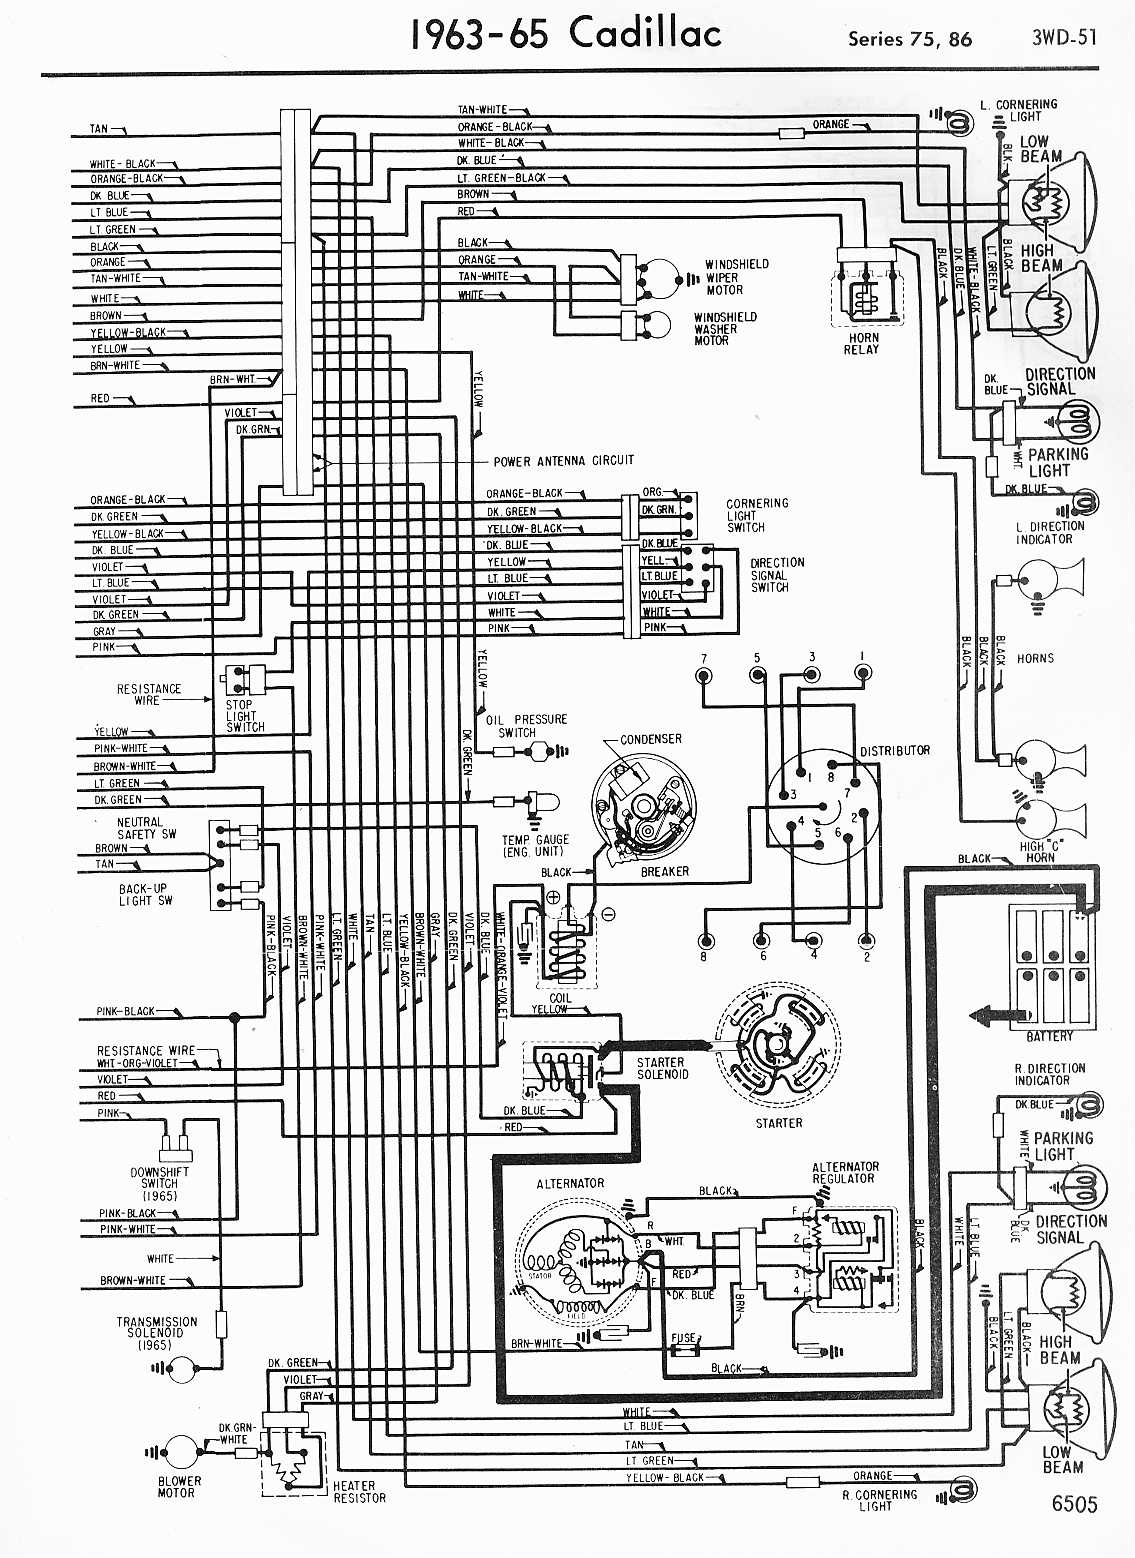 Cadillac Ac Diagram Electronic Wiring Diagrams Mini Cooper Free Vehicle 1957 1965 Chevelle